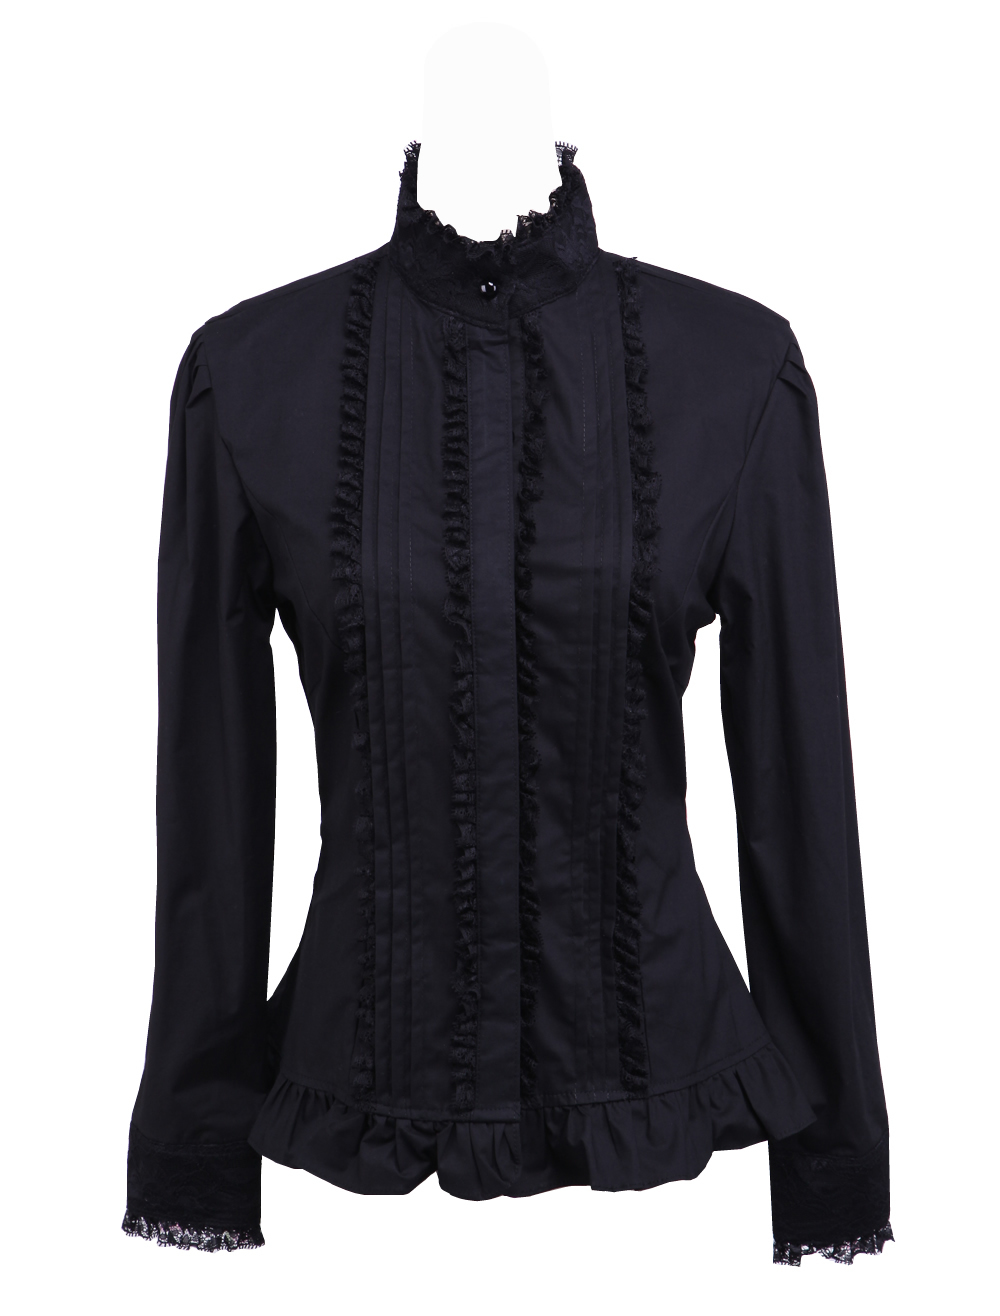 Primary image for Black Stand-up Collar Ruffle Retro Victorian Gothic Cotton Lolita Shirt Blouse